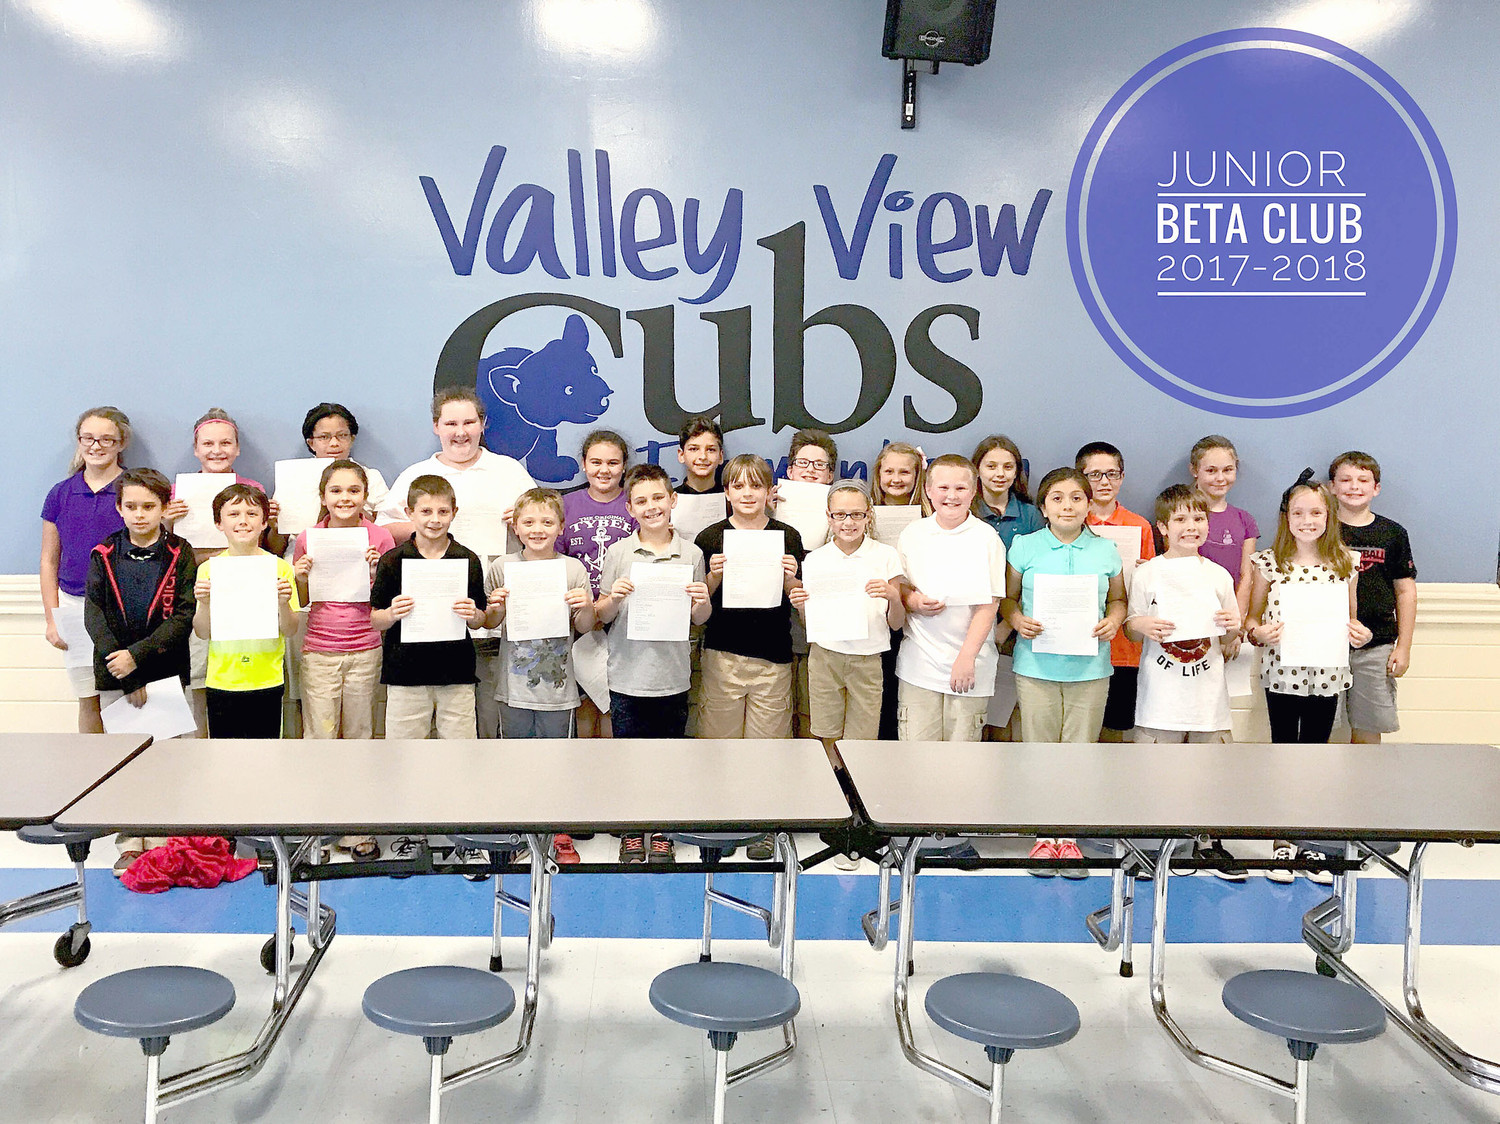 VALLEY VIEW ELEMENTARY recently celebrated the Junior Beta Club inductees for the 2017-18 year. These fourth and fifth-graders were chosen for their academic excellence and character. In the back row, from left, are Riley George, Sophie Cameron, Serenity Cooper, Kylie Holland, Carley Horning, Cameron Higgins, Aiden Smith, Cambree Milen, Patience Stephens, Isaiah Gunter, Shiloh Denton and Tucker White. In the front row are:  Jeremiah Phelps, Carson Russell, Trinity Gibson, Waylon Wilson, Doc James, Christopher Herron, Austin Wooden, Karly Blackwell, Robert Rowe, Veda Pineda-Roblero, Takoda Niswonger and Chloe Frakes.